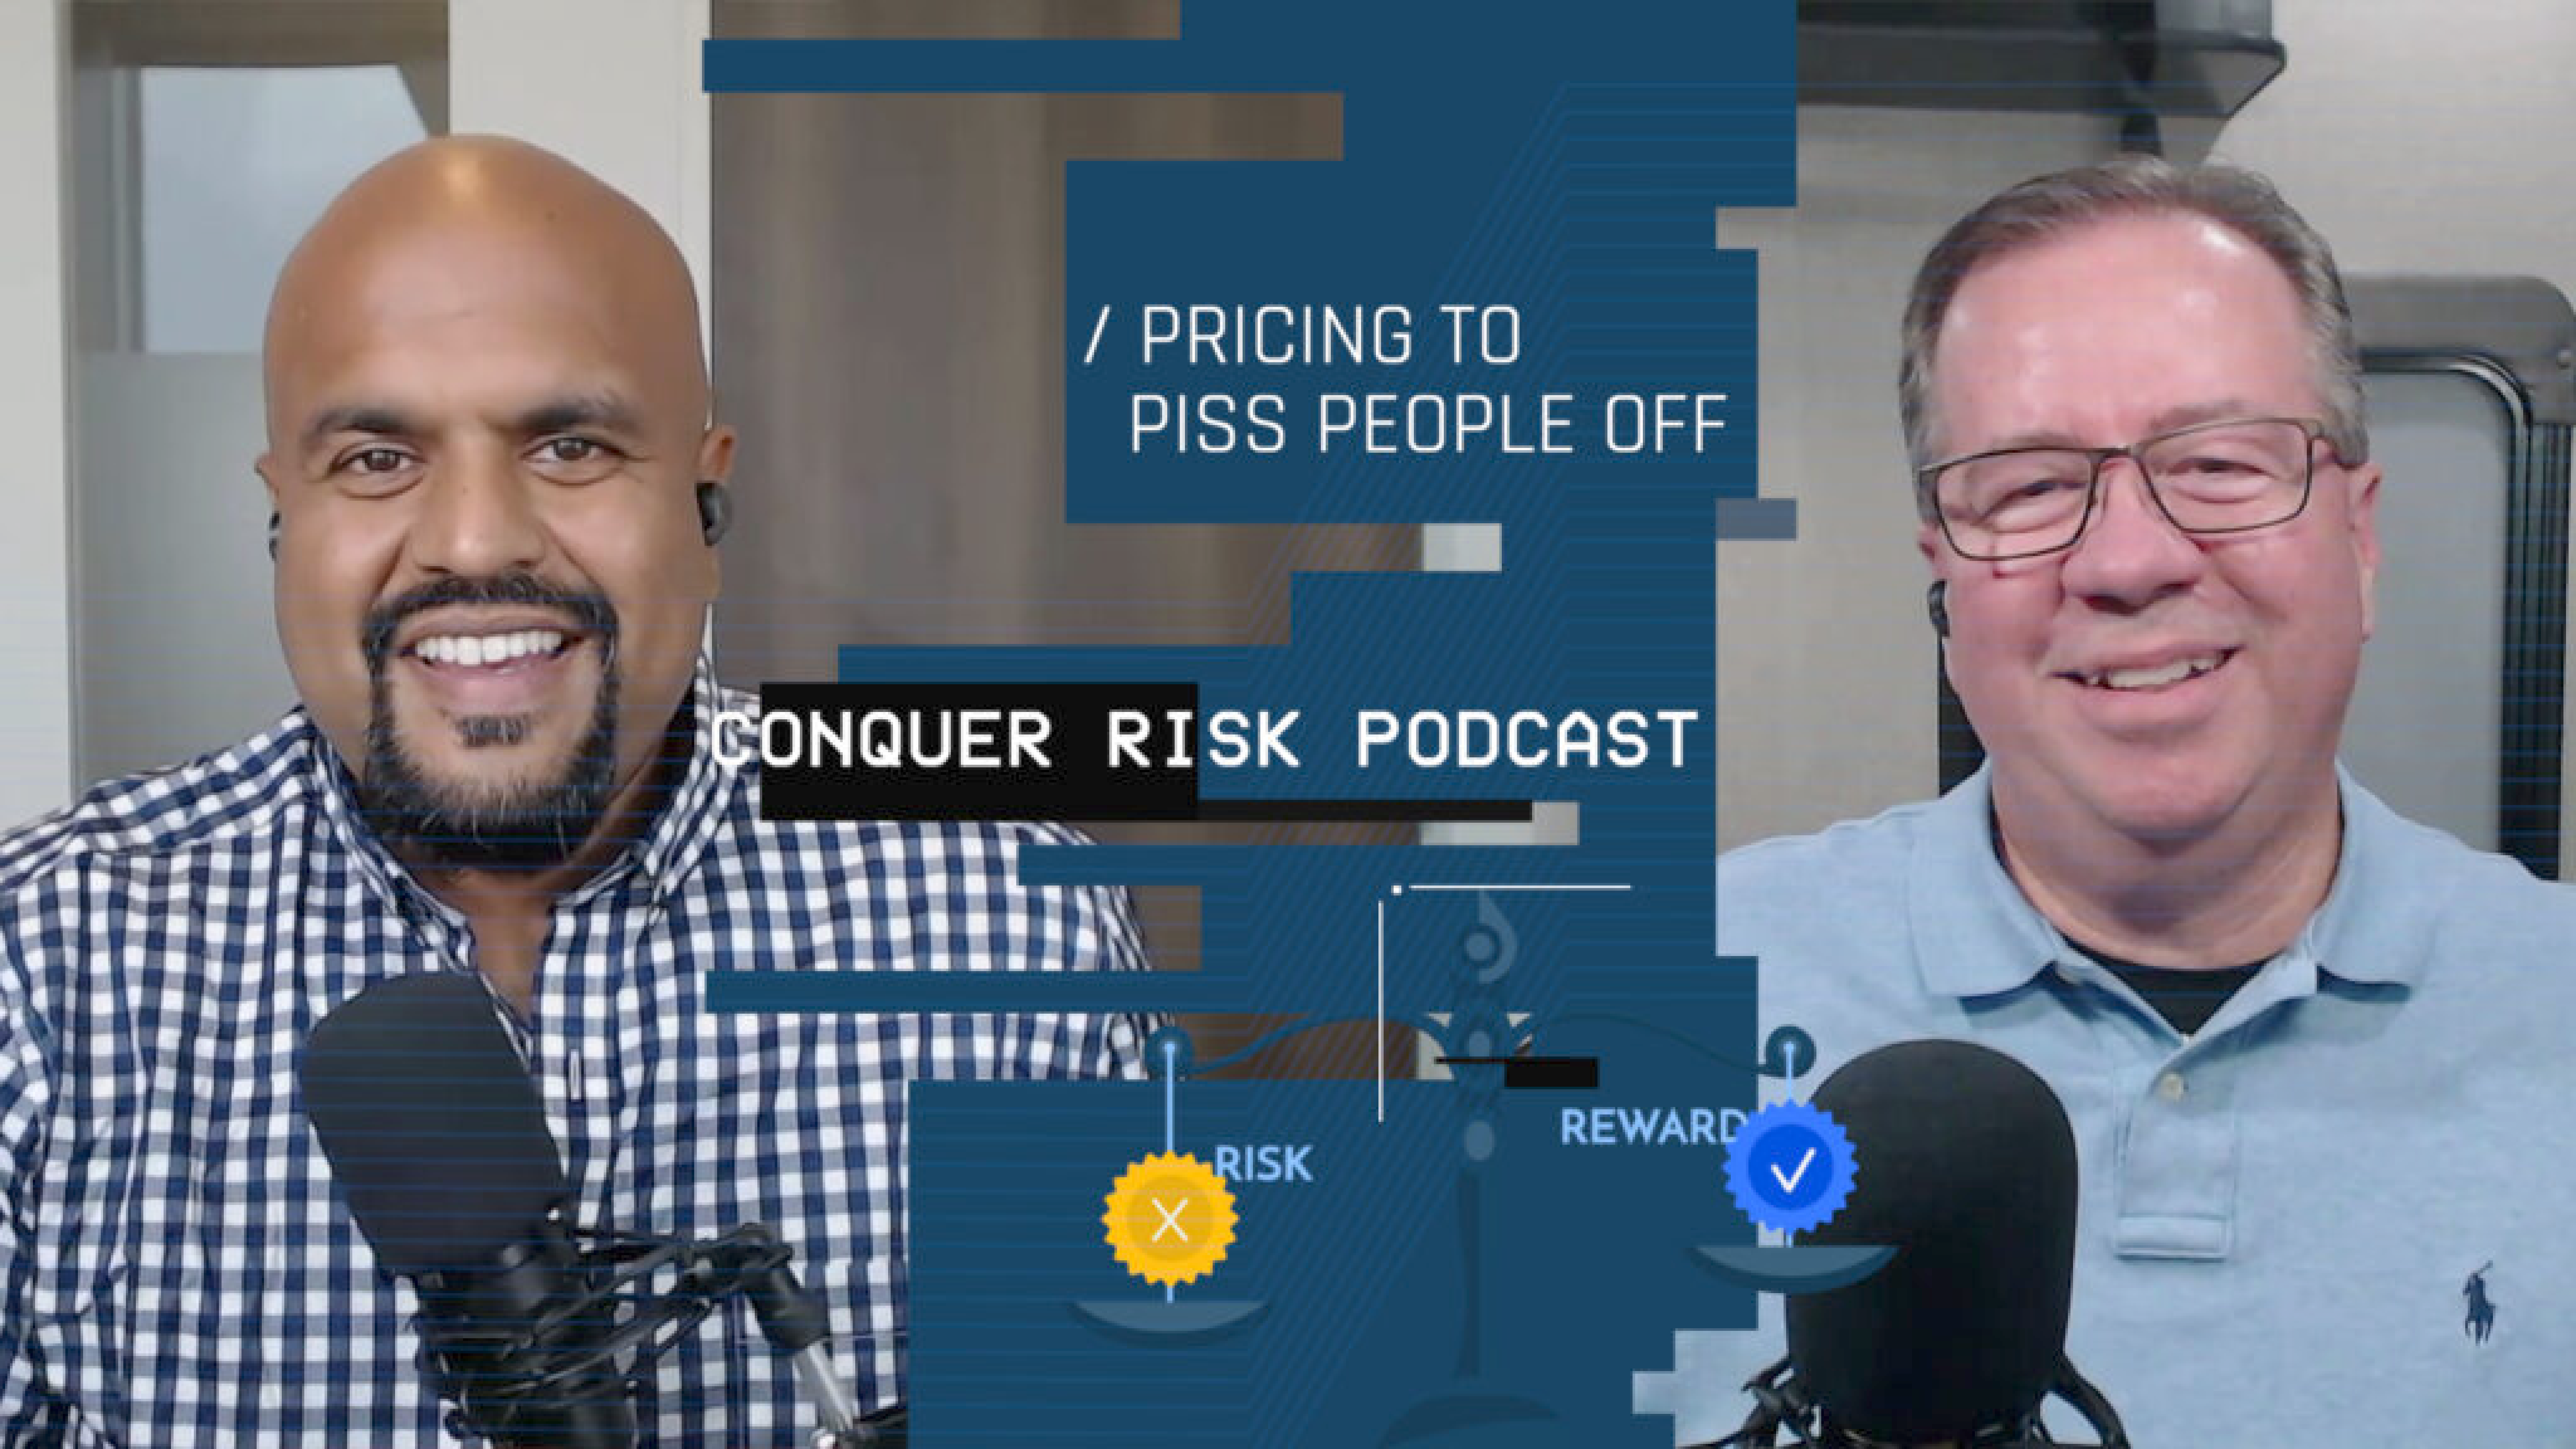 Pricing to Piss People Off (S3 E18)